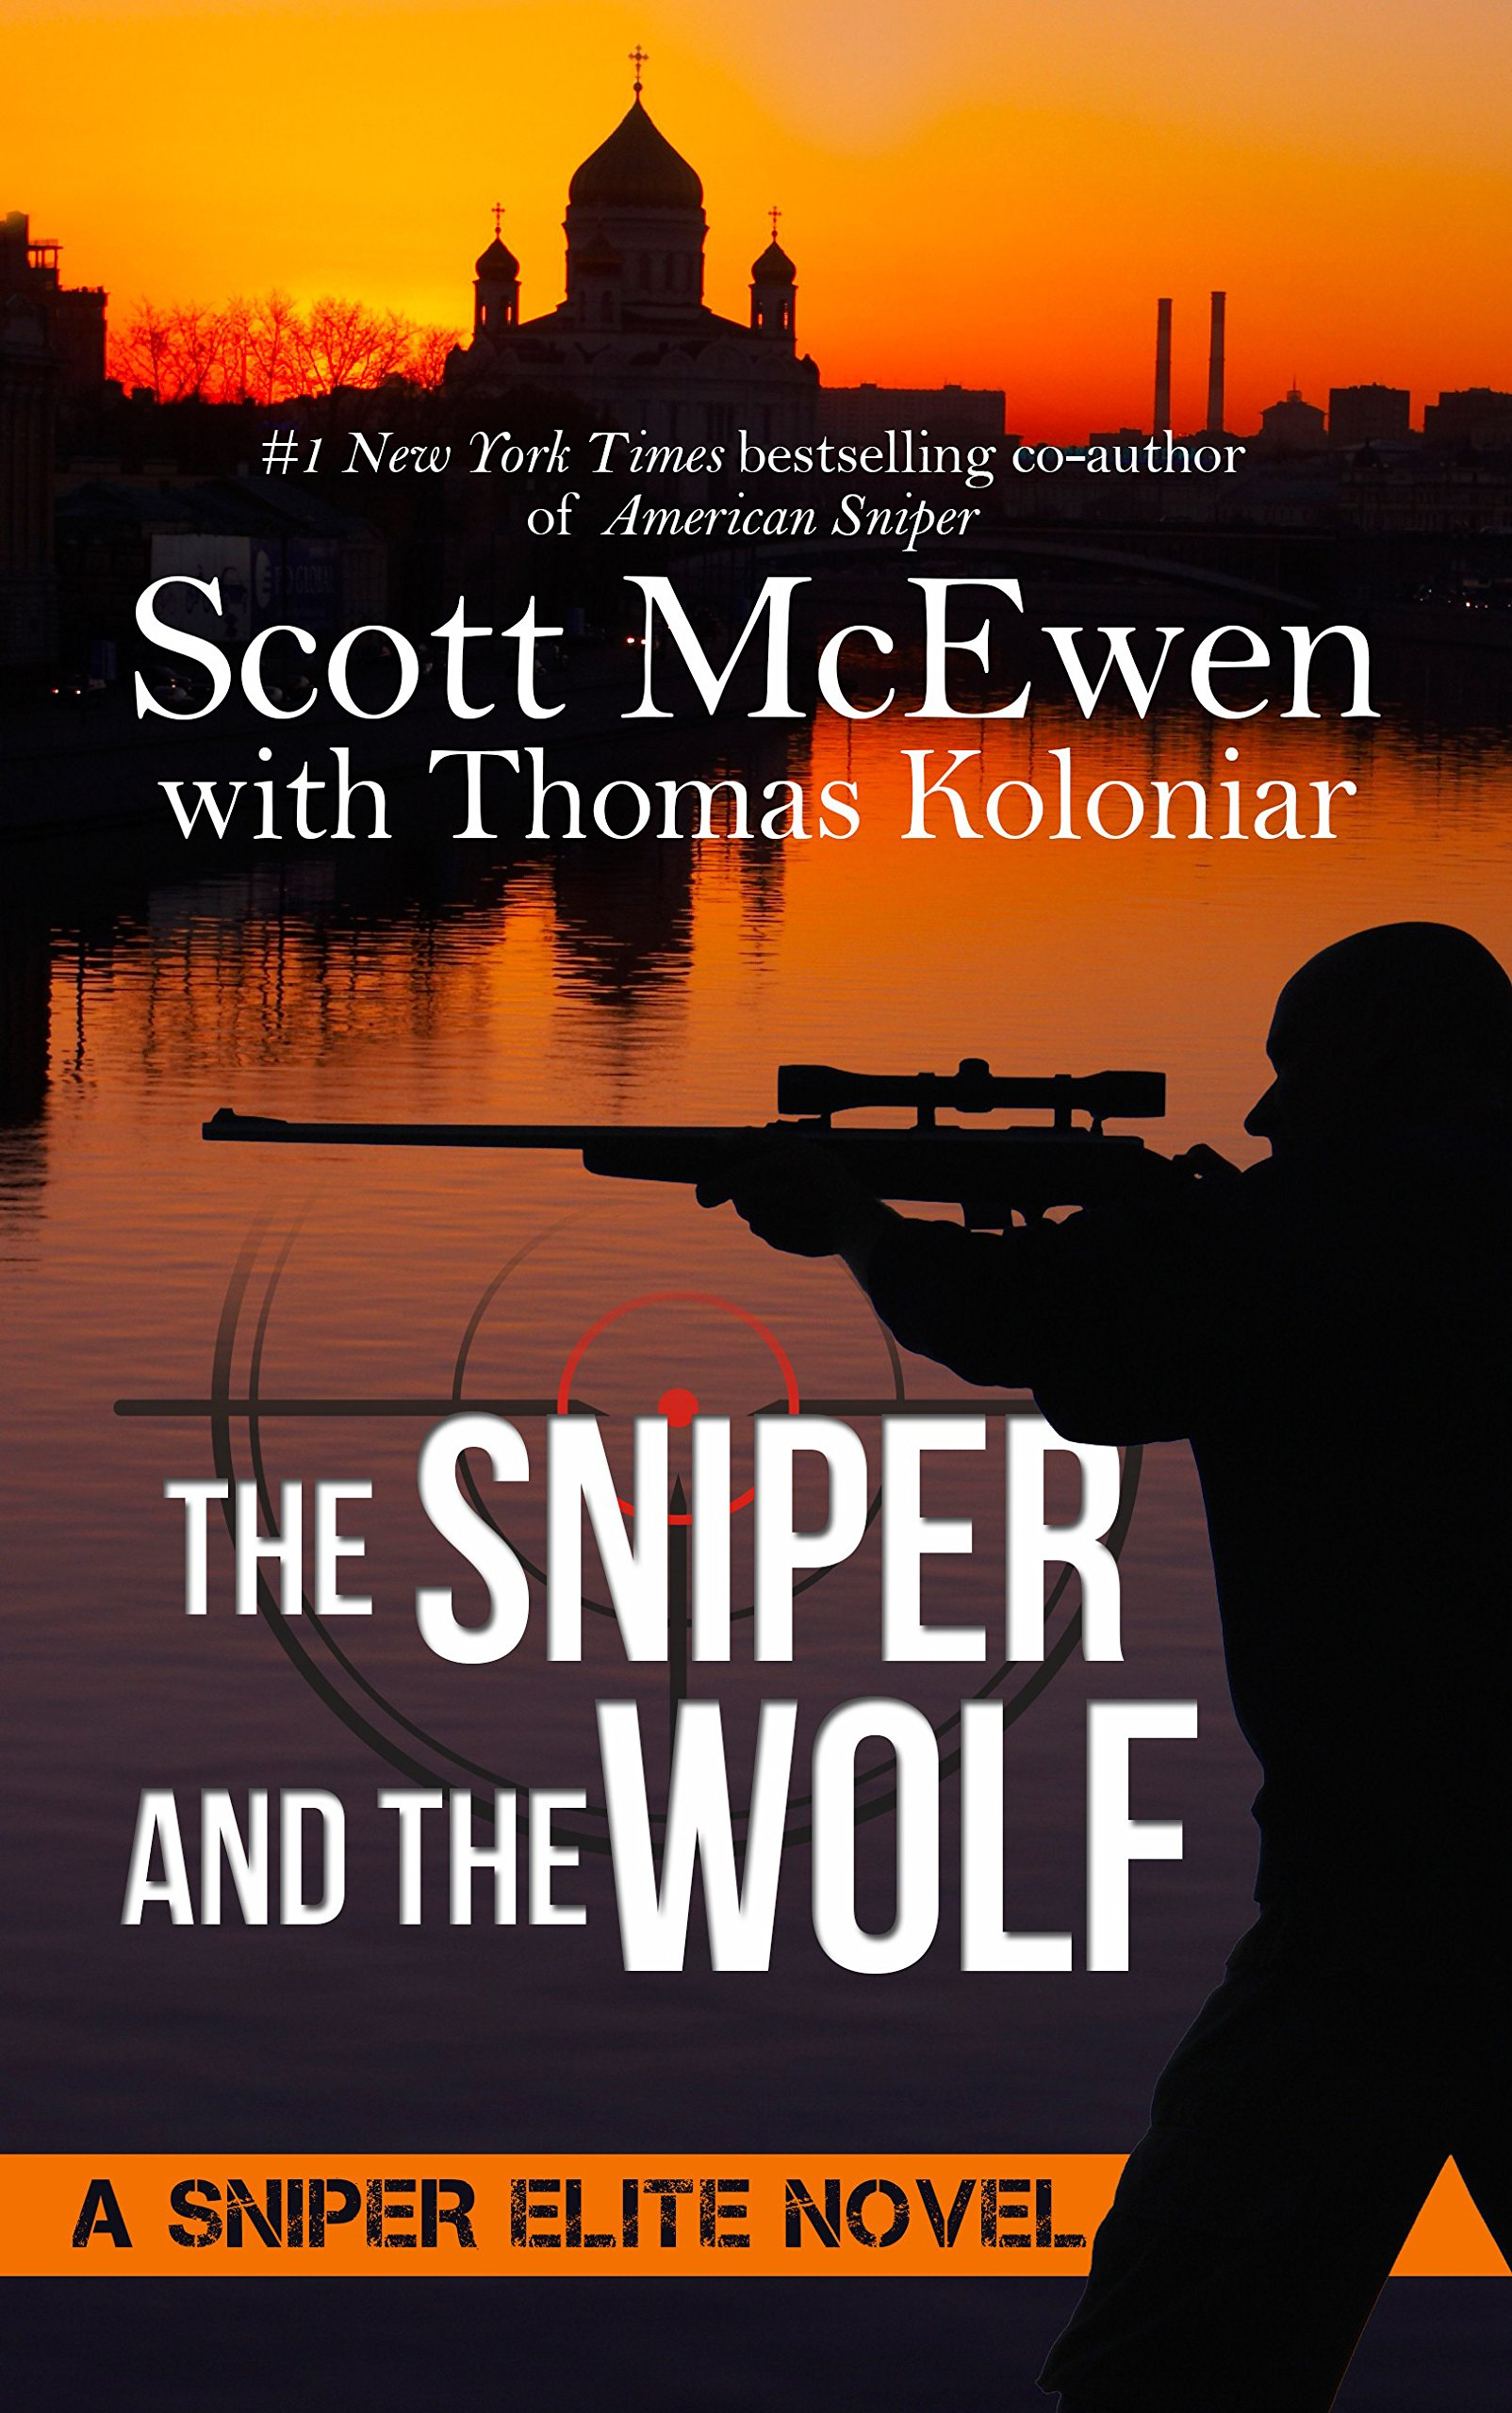 The Sniper And The Wolf (A Sniper Elite Novel) ebook